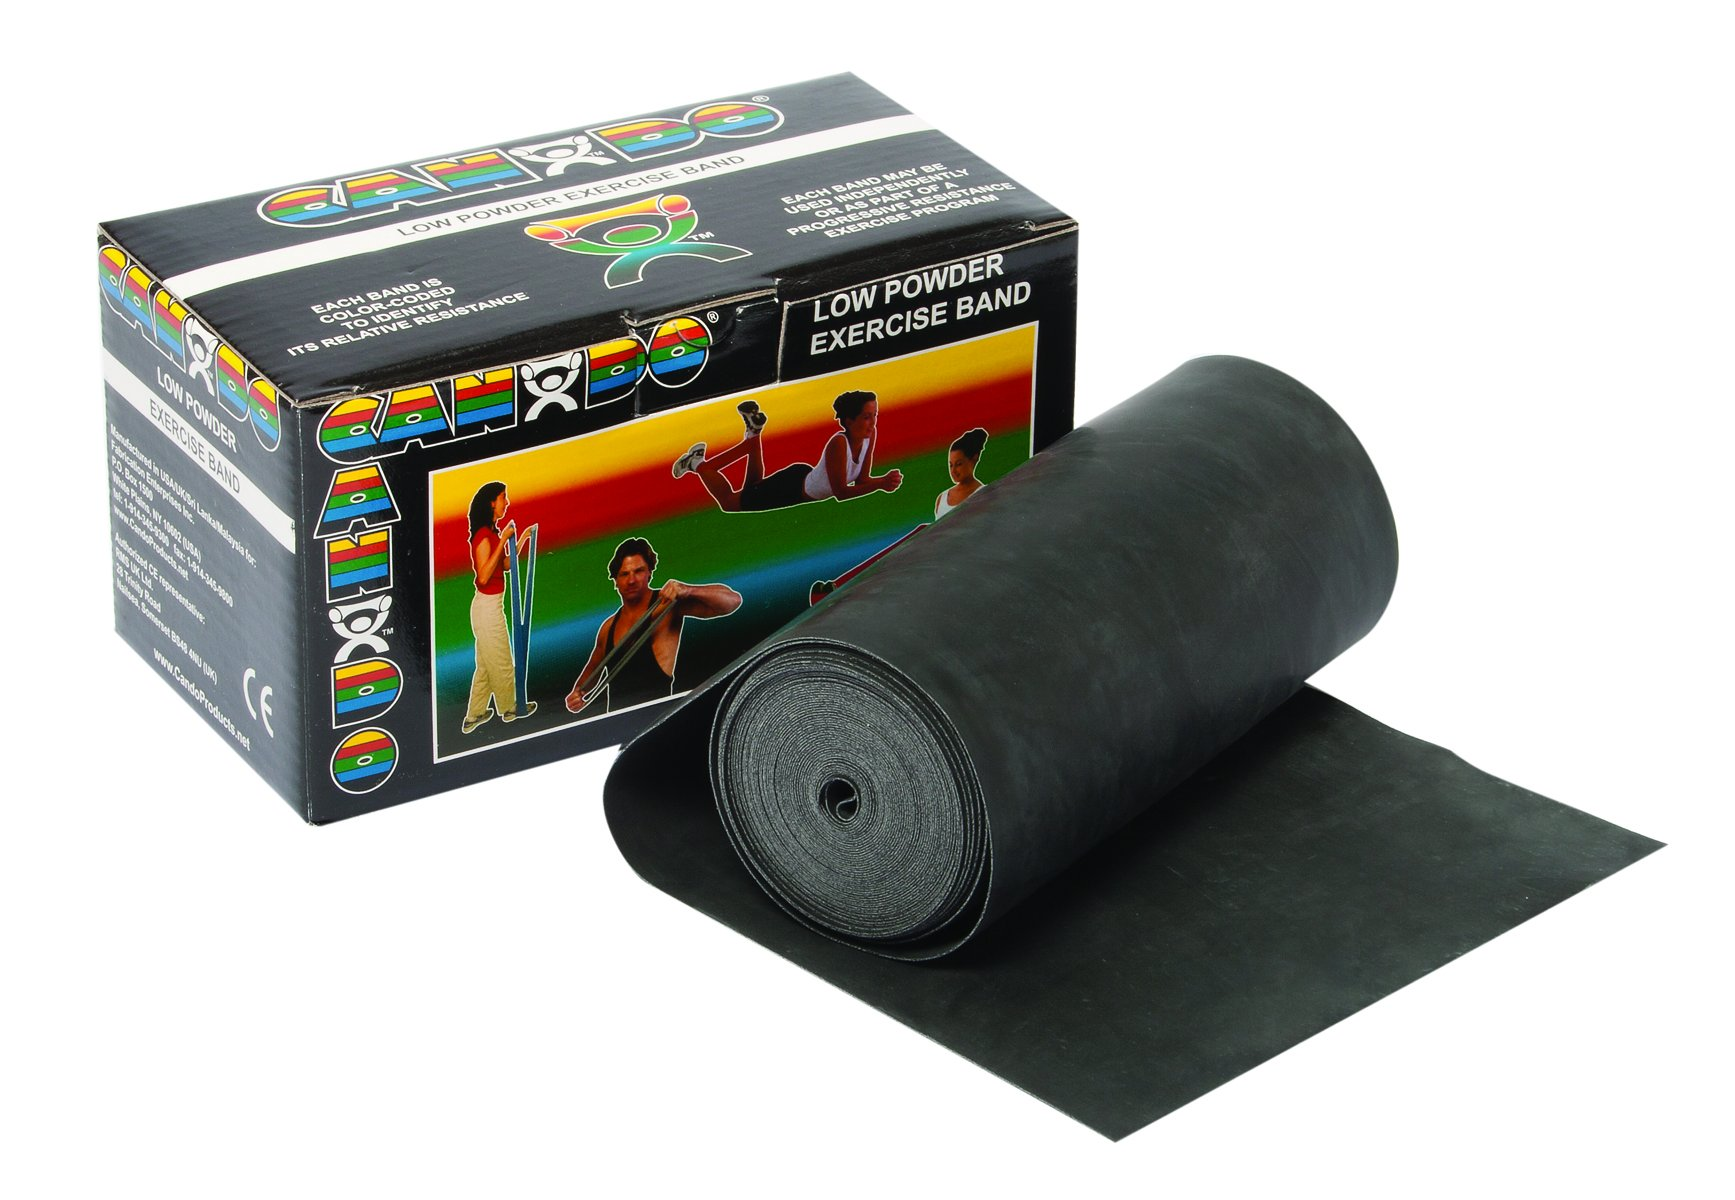 CanDo Low Powder Exercise Band, 6 yard Roll, Black: X-Heavy